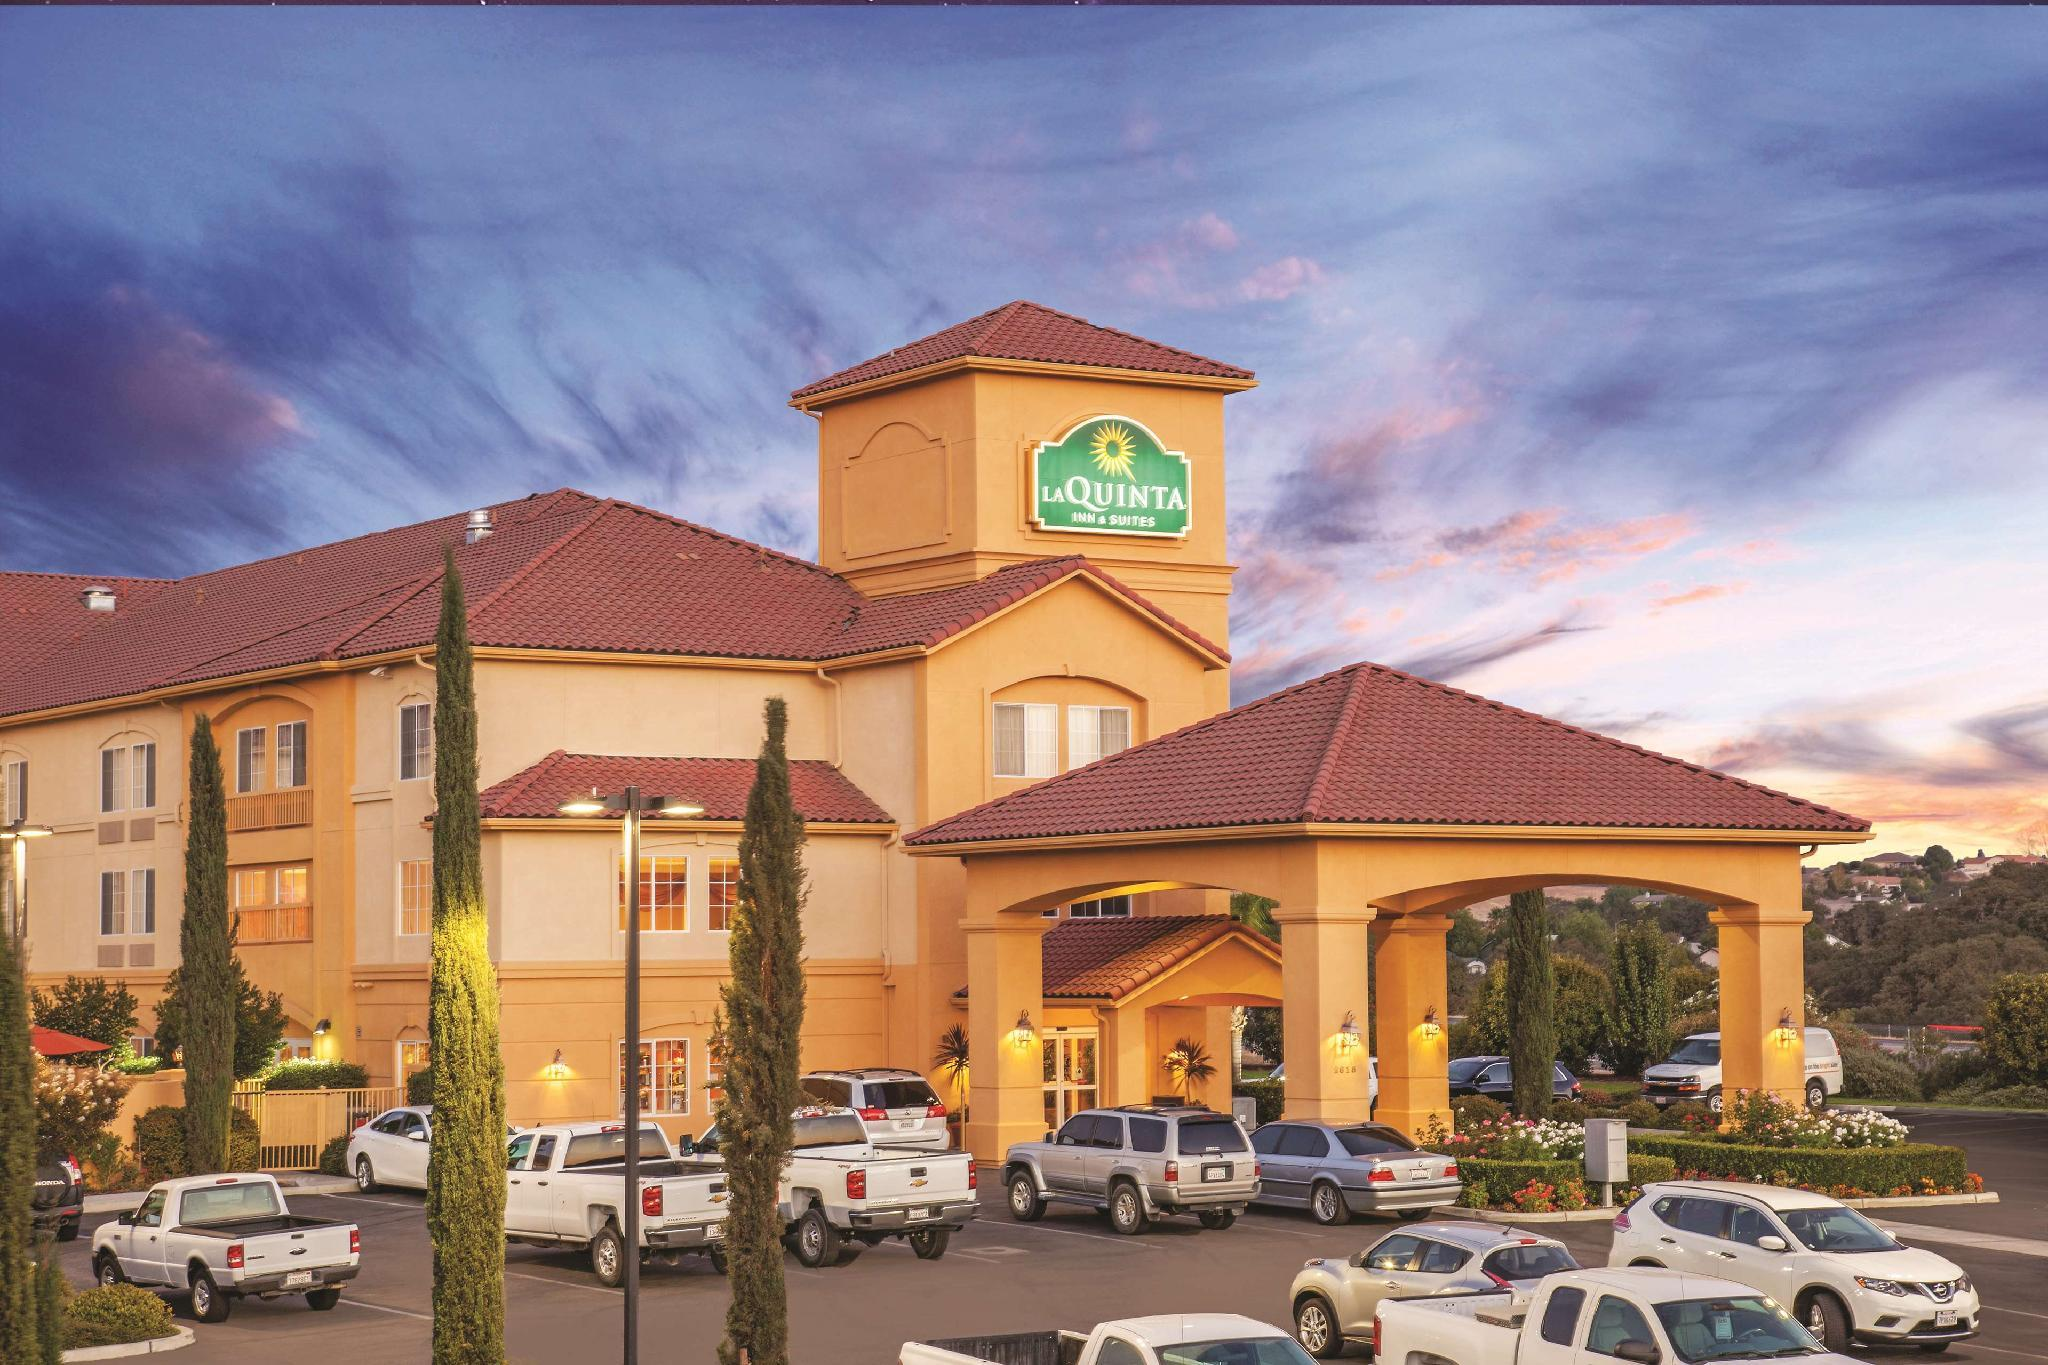 La Quinta Inn And Suites By Wyndham Paso Robles